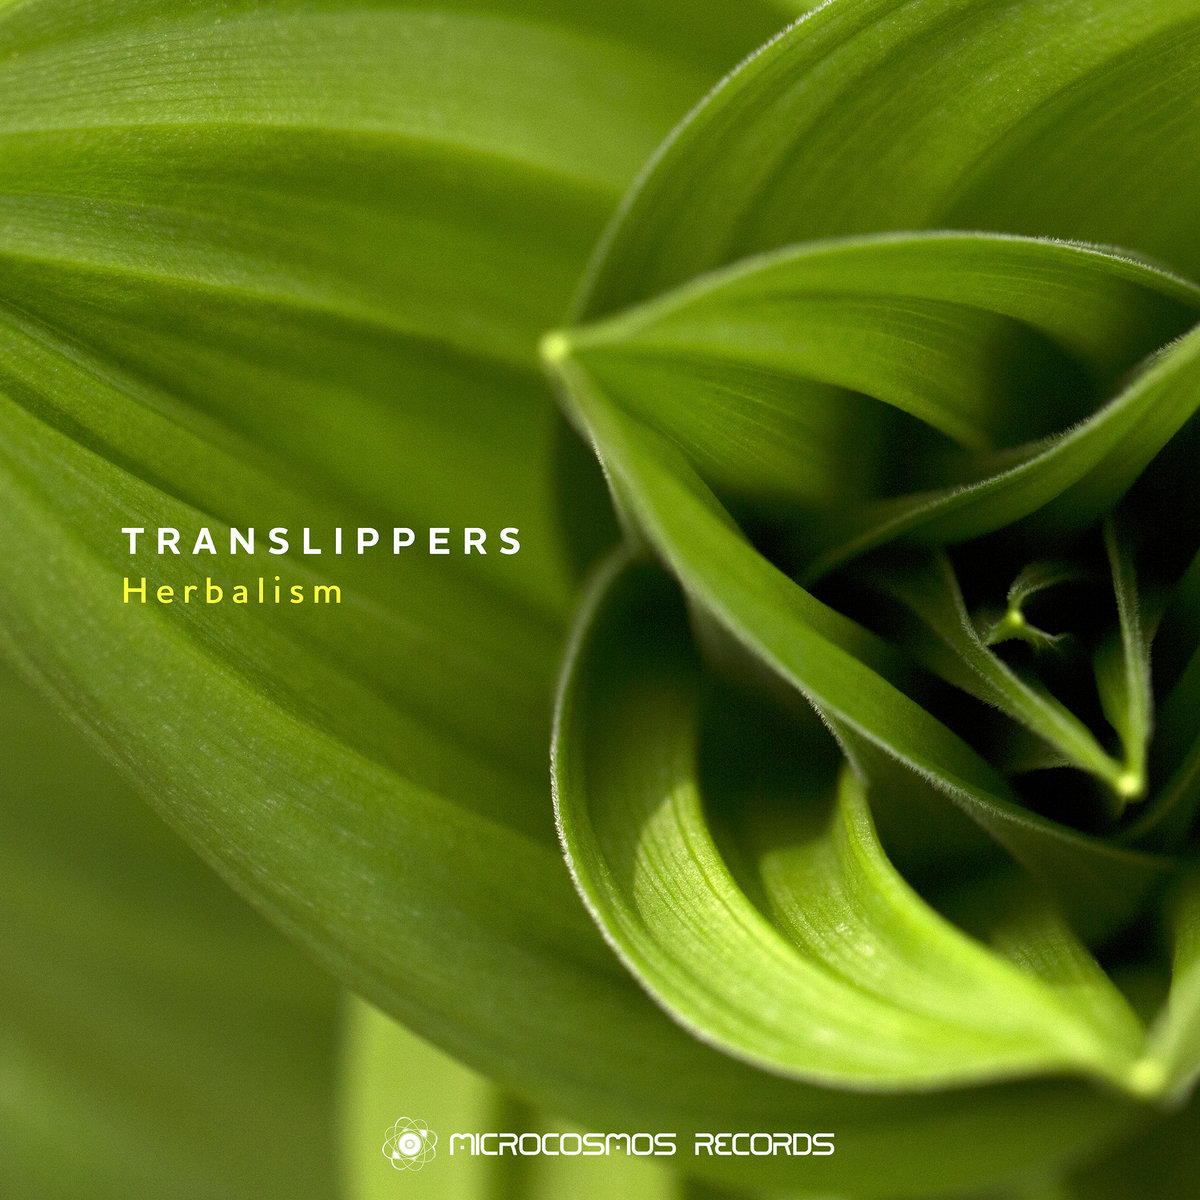 Translippers - Herbalism (artwork)